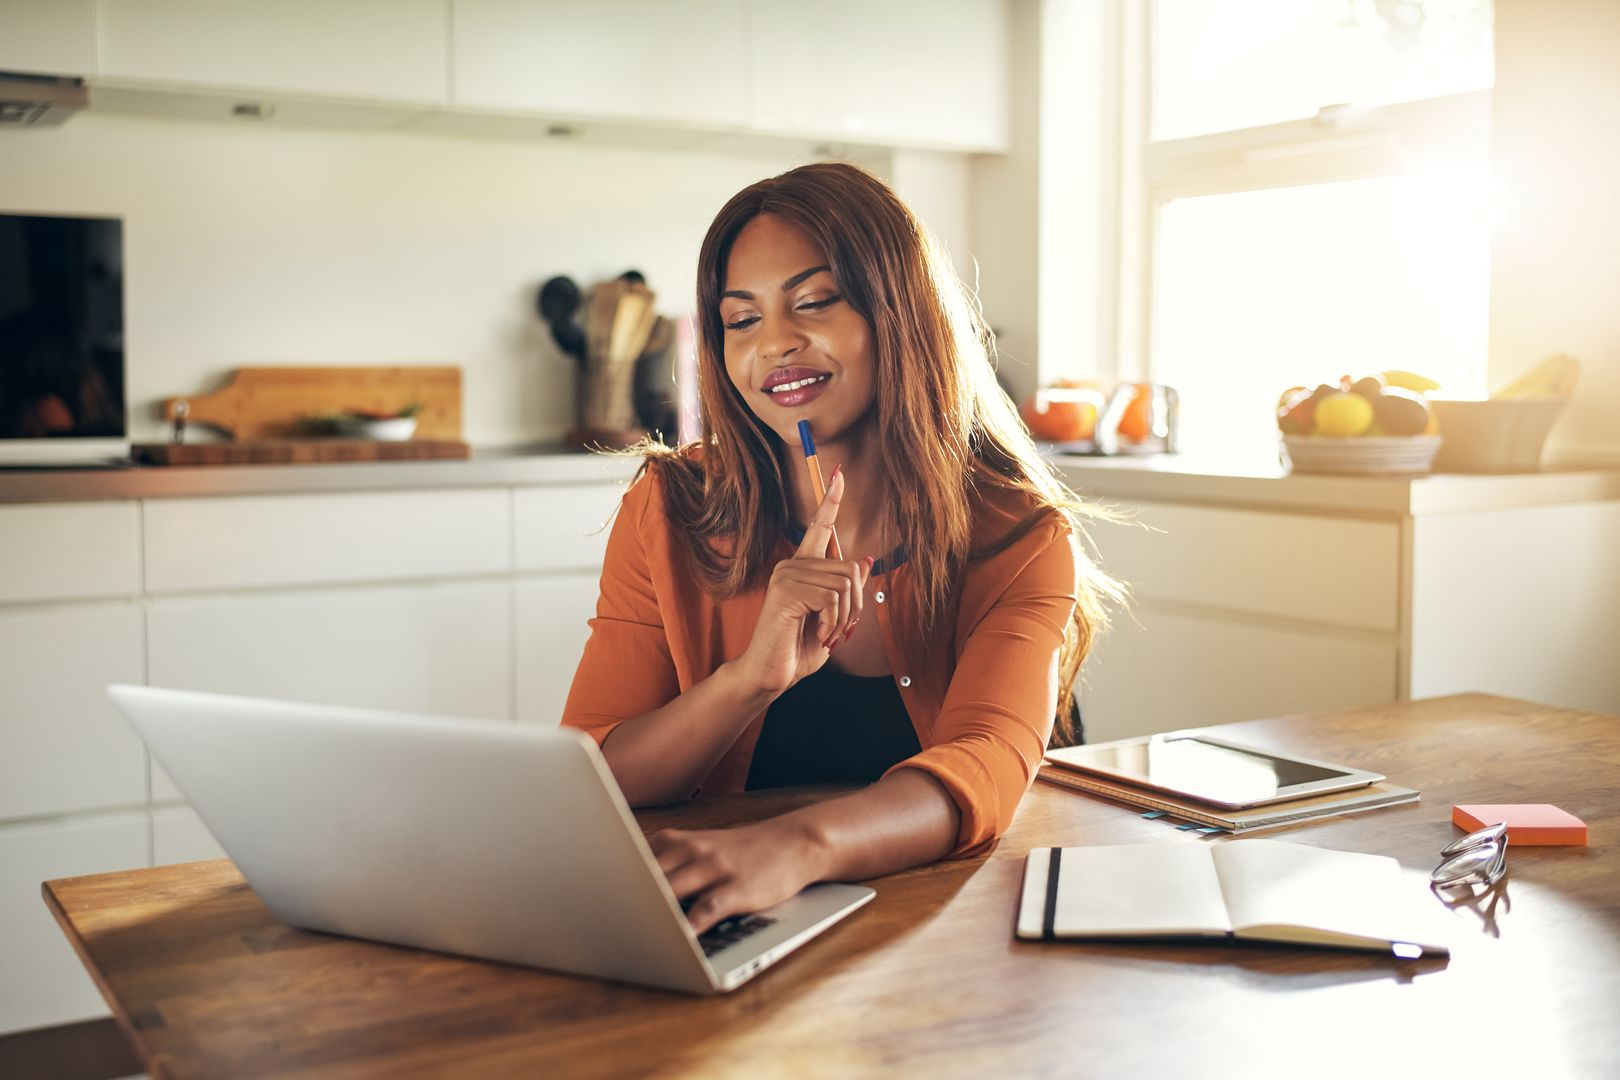 Smiling young African female entrepreneur sitting alone at a table in her kitchen working online with a laptop